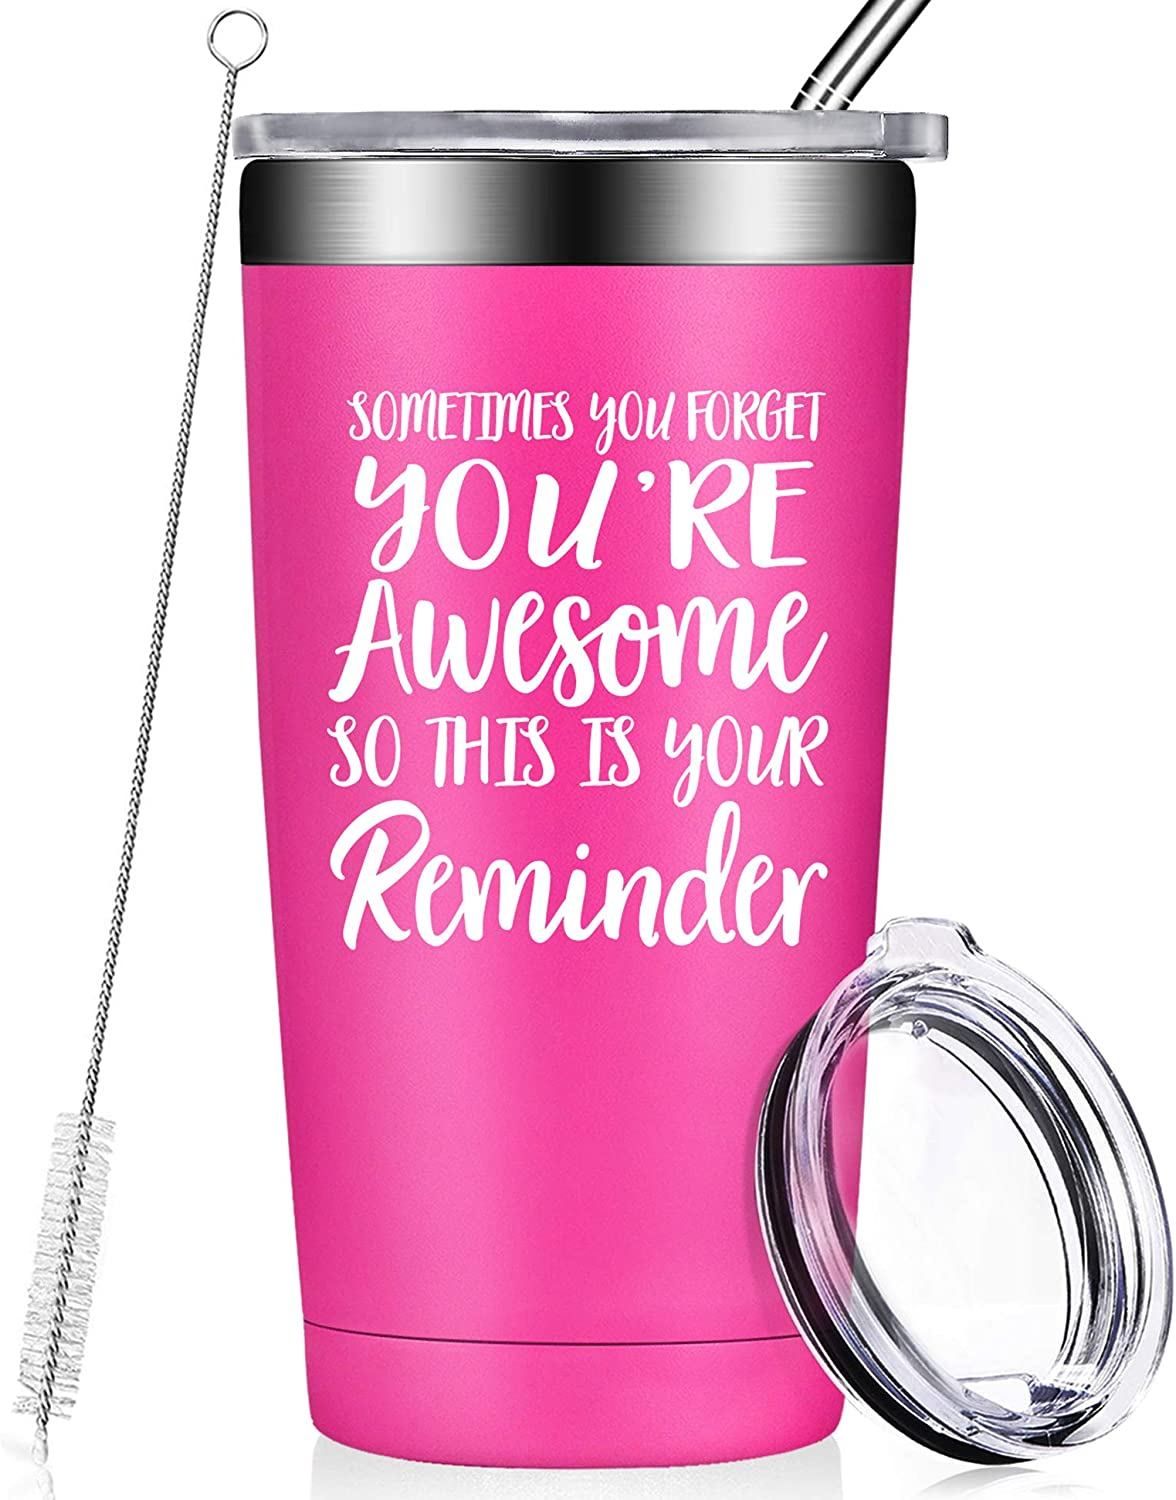 Thank You Gifts for Women - Funny Inspirational Birthday Graduation Gifts, Appreciation, Friendship, Christmas for Coworker, Employee, Boss, Mom, Wife, Friends, Men, Son, Daughter, Her Tumbler